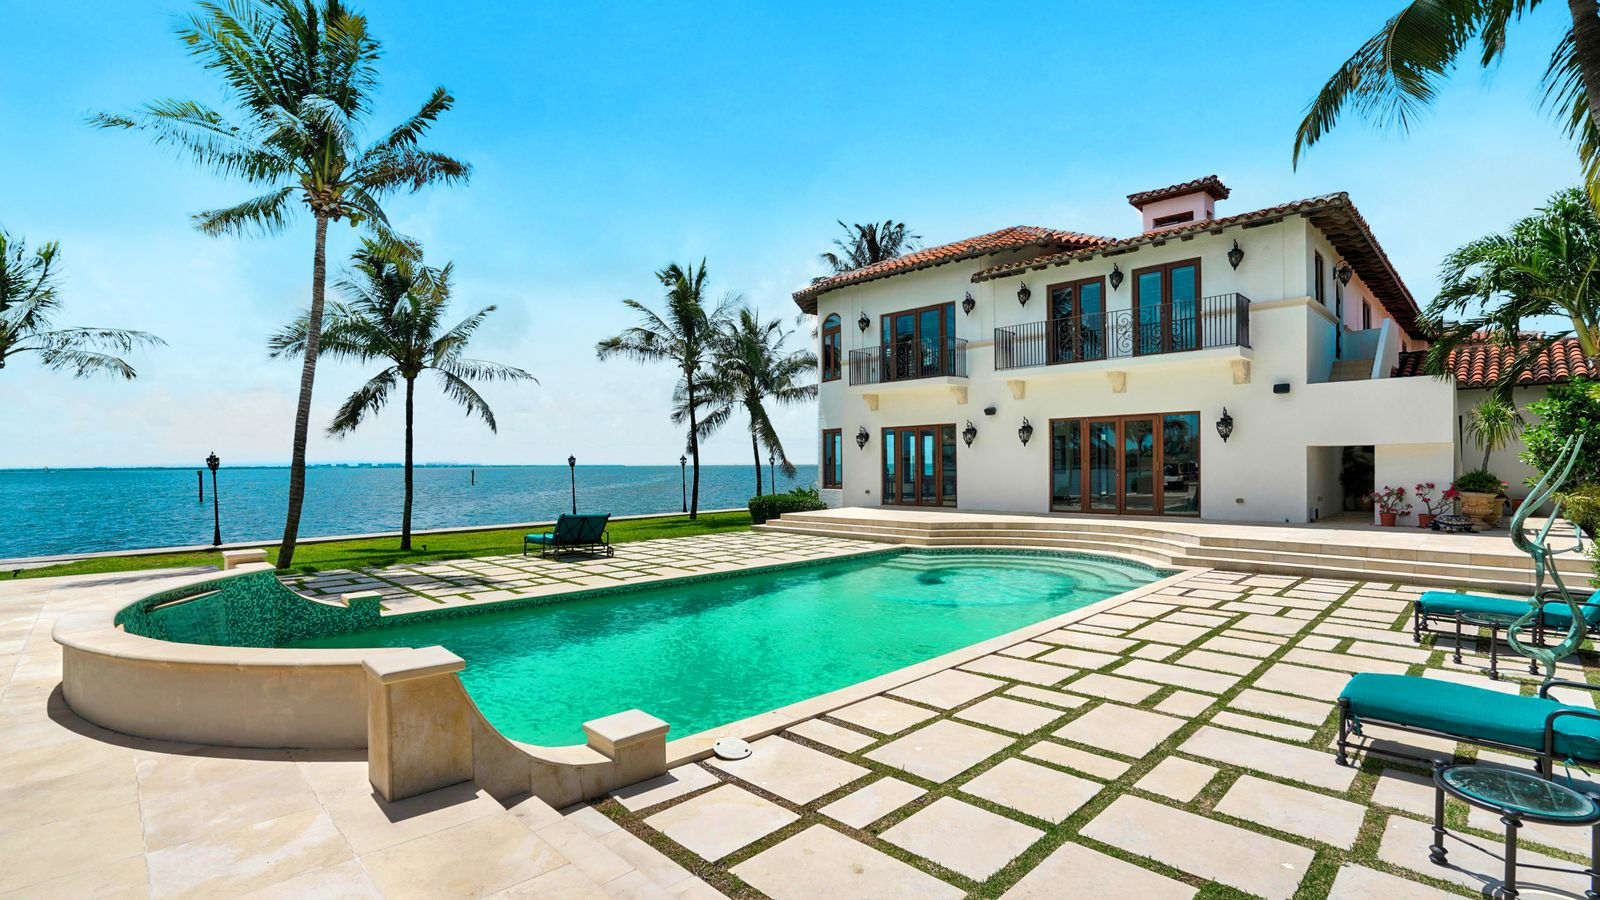 One of miami s largest homes sells for 12m curbed miami for Biggest house in miami